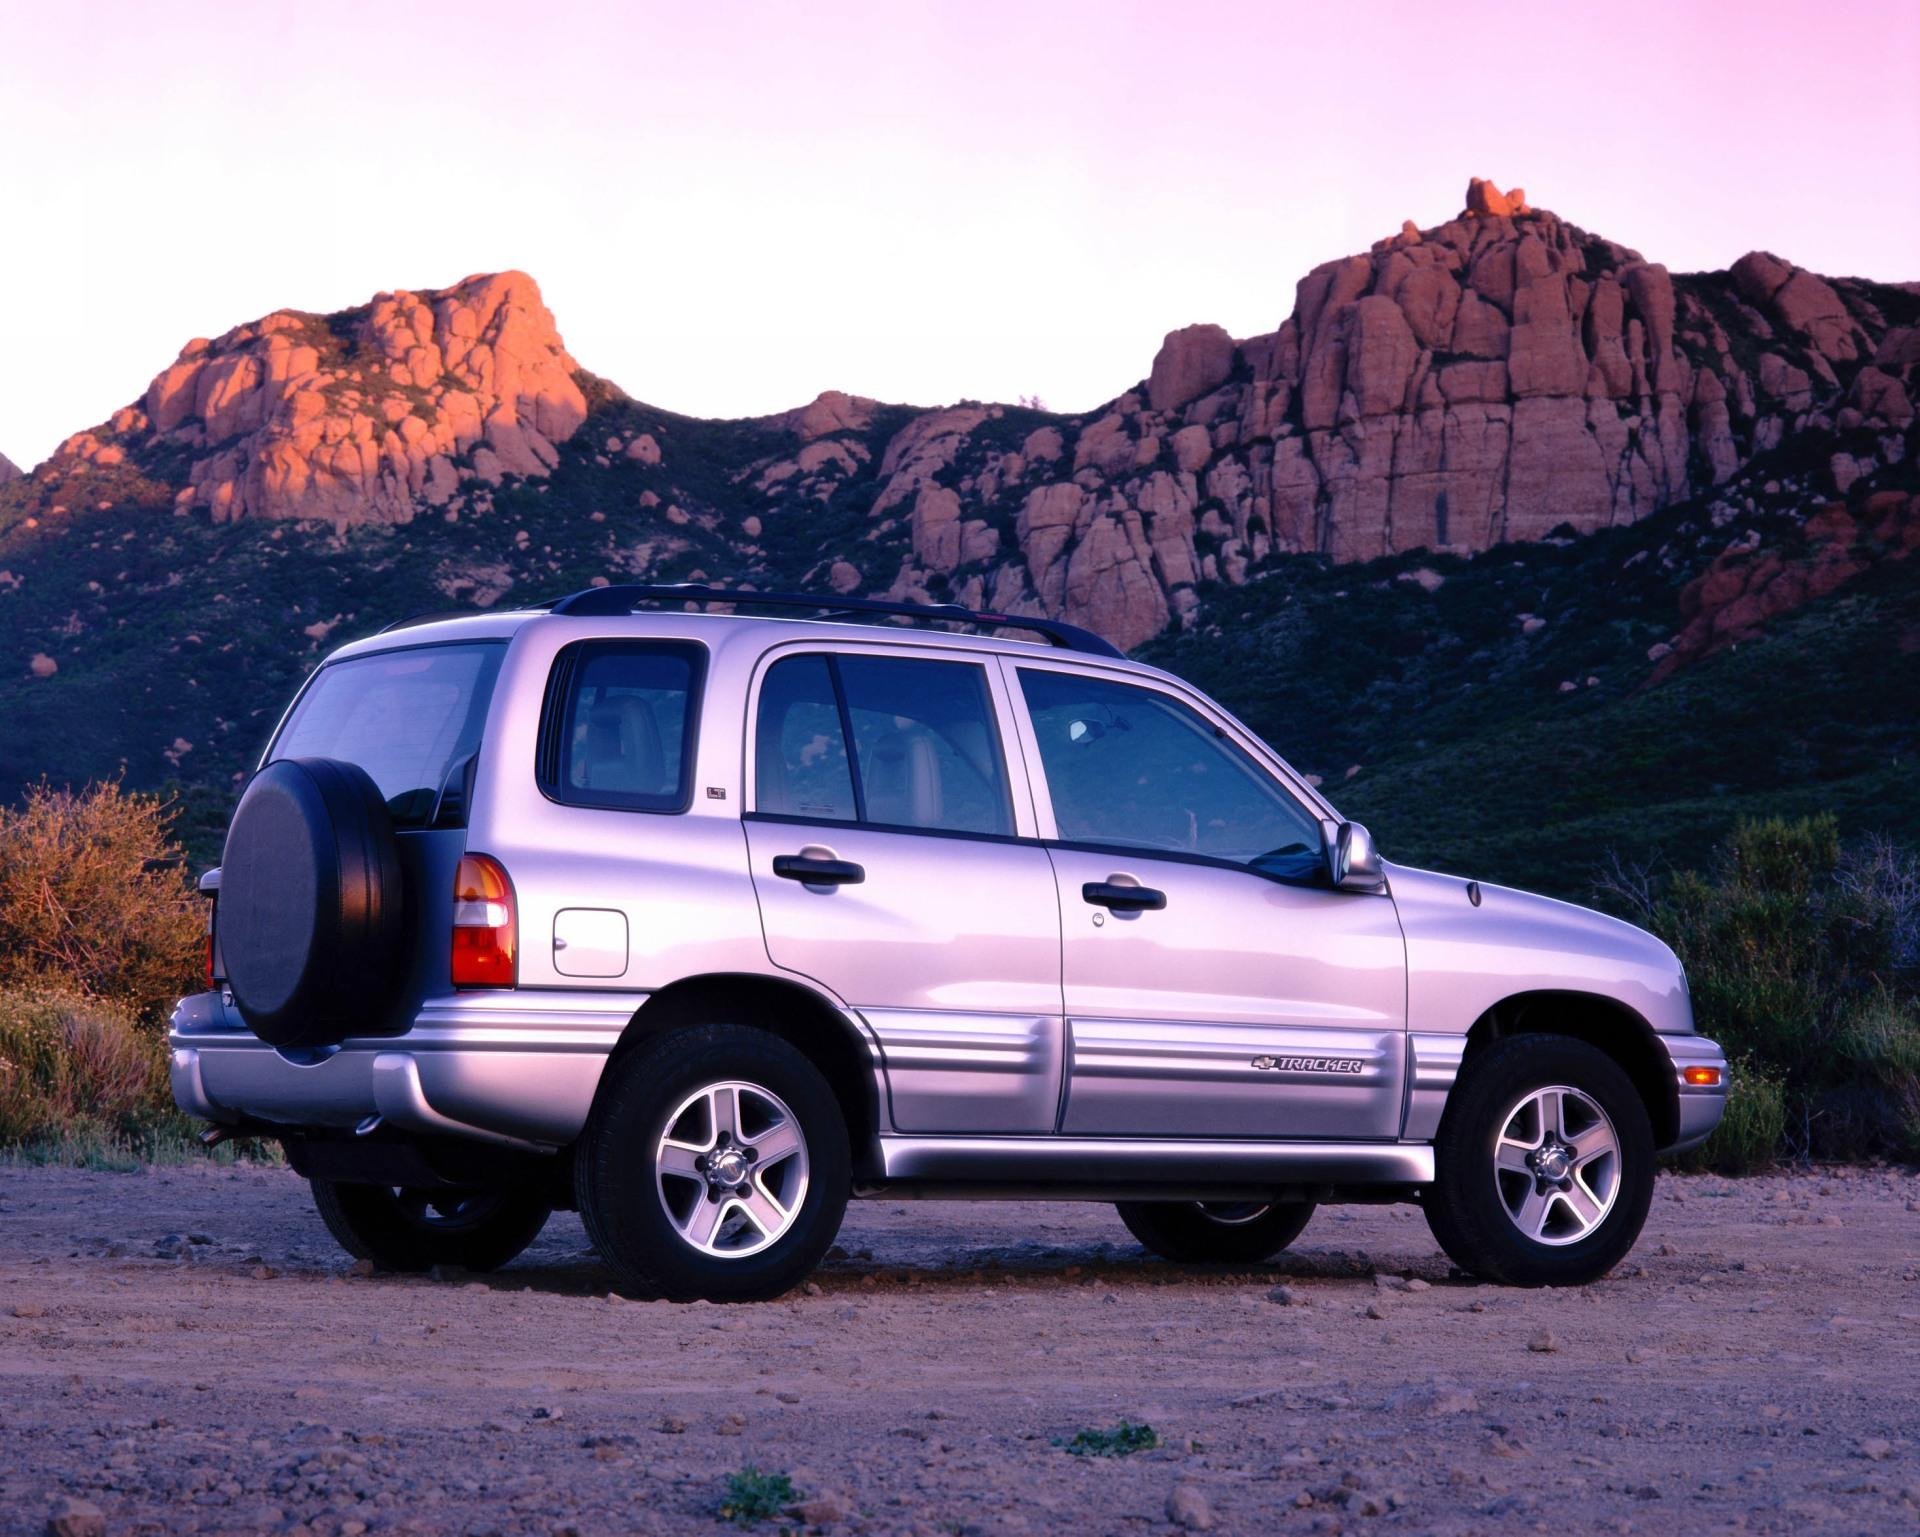 2004 chevrolet tracker history pictures value auction sales research and news. Black Bedroom Furniture Sets. Home Design Ideas